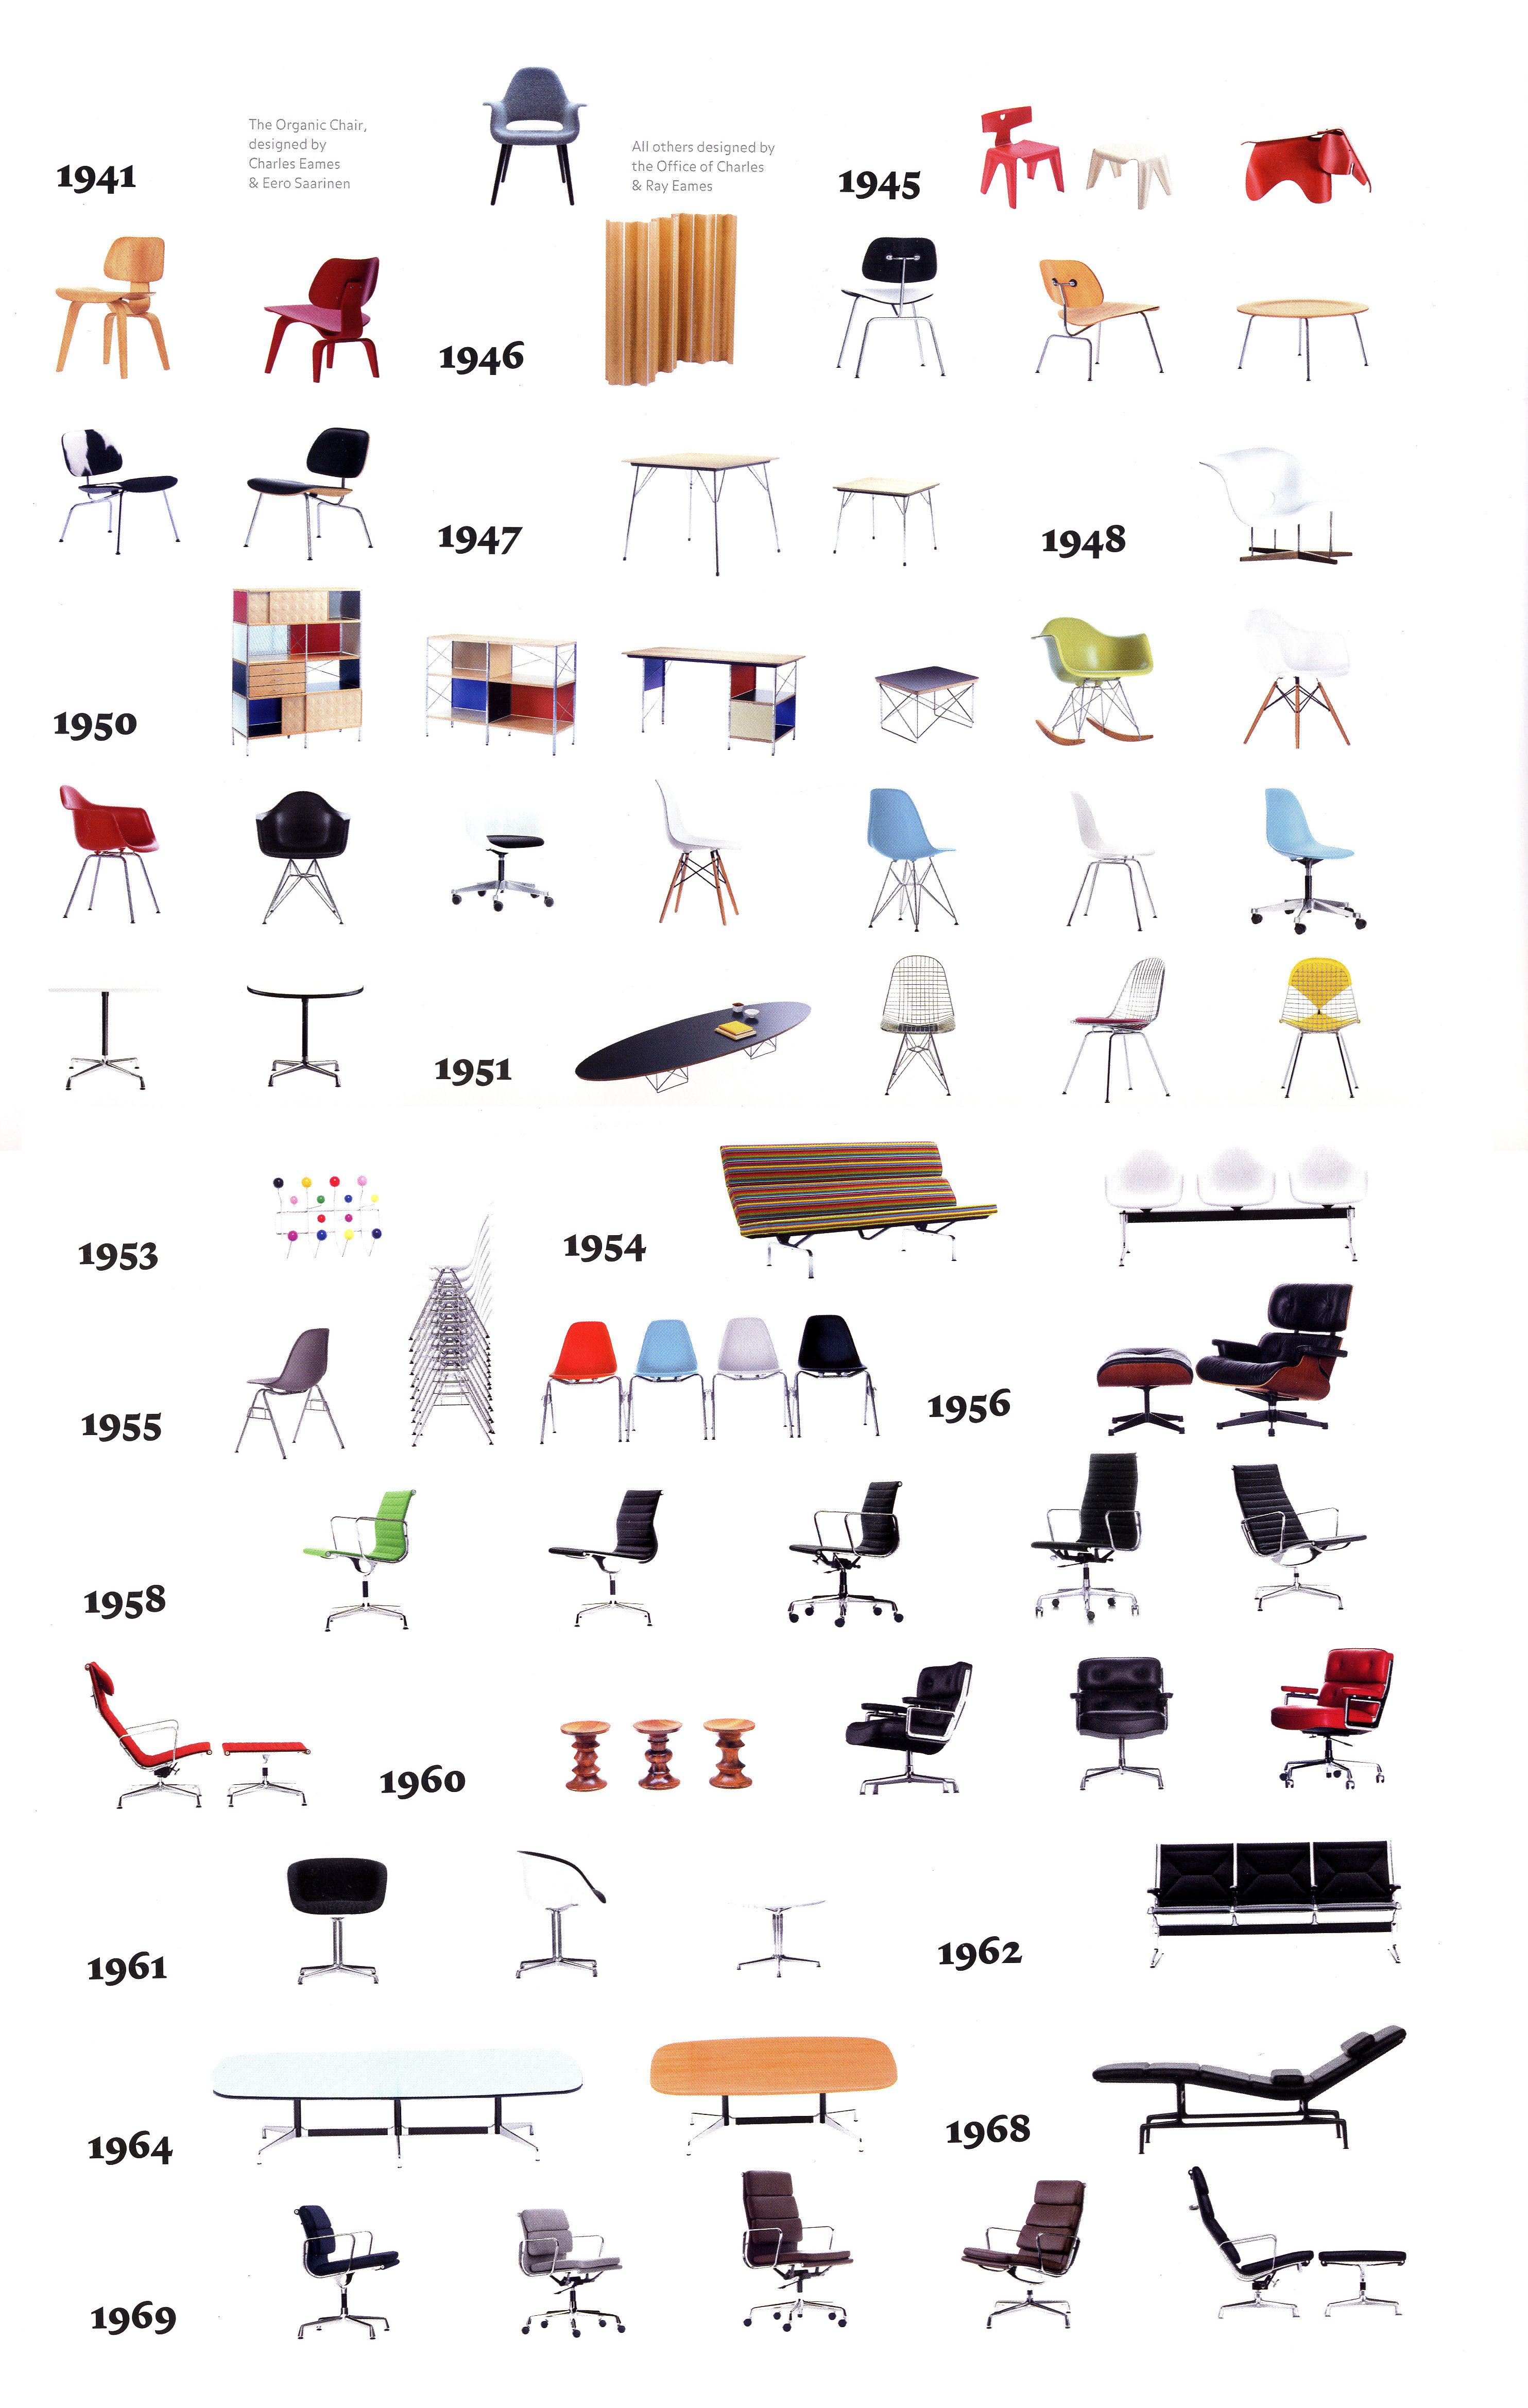 Vitra s timeline of Eames designs from the earliest to the latest timelss classics all